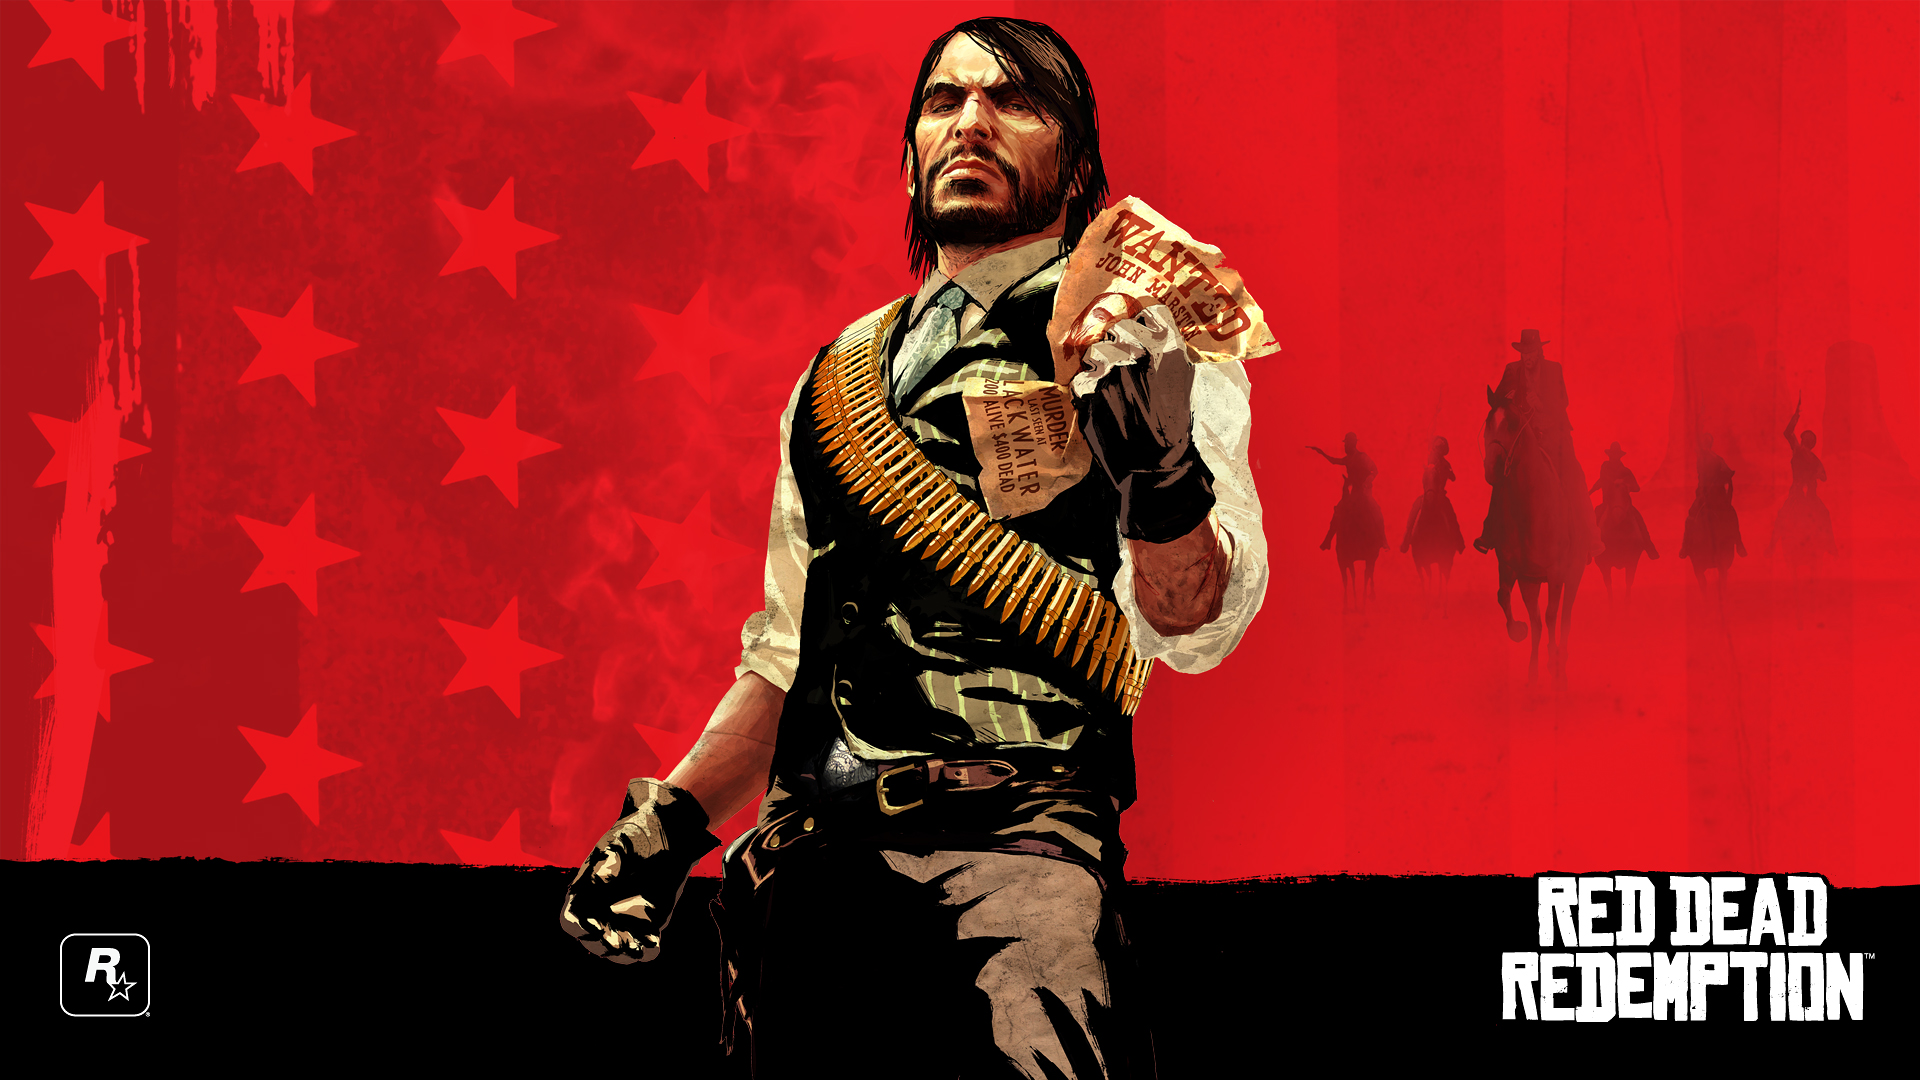 Red Dead Redemption Wallpaper 1920x1080 79064